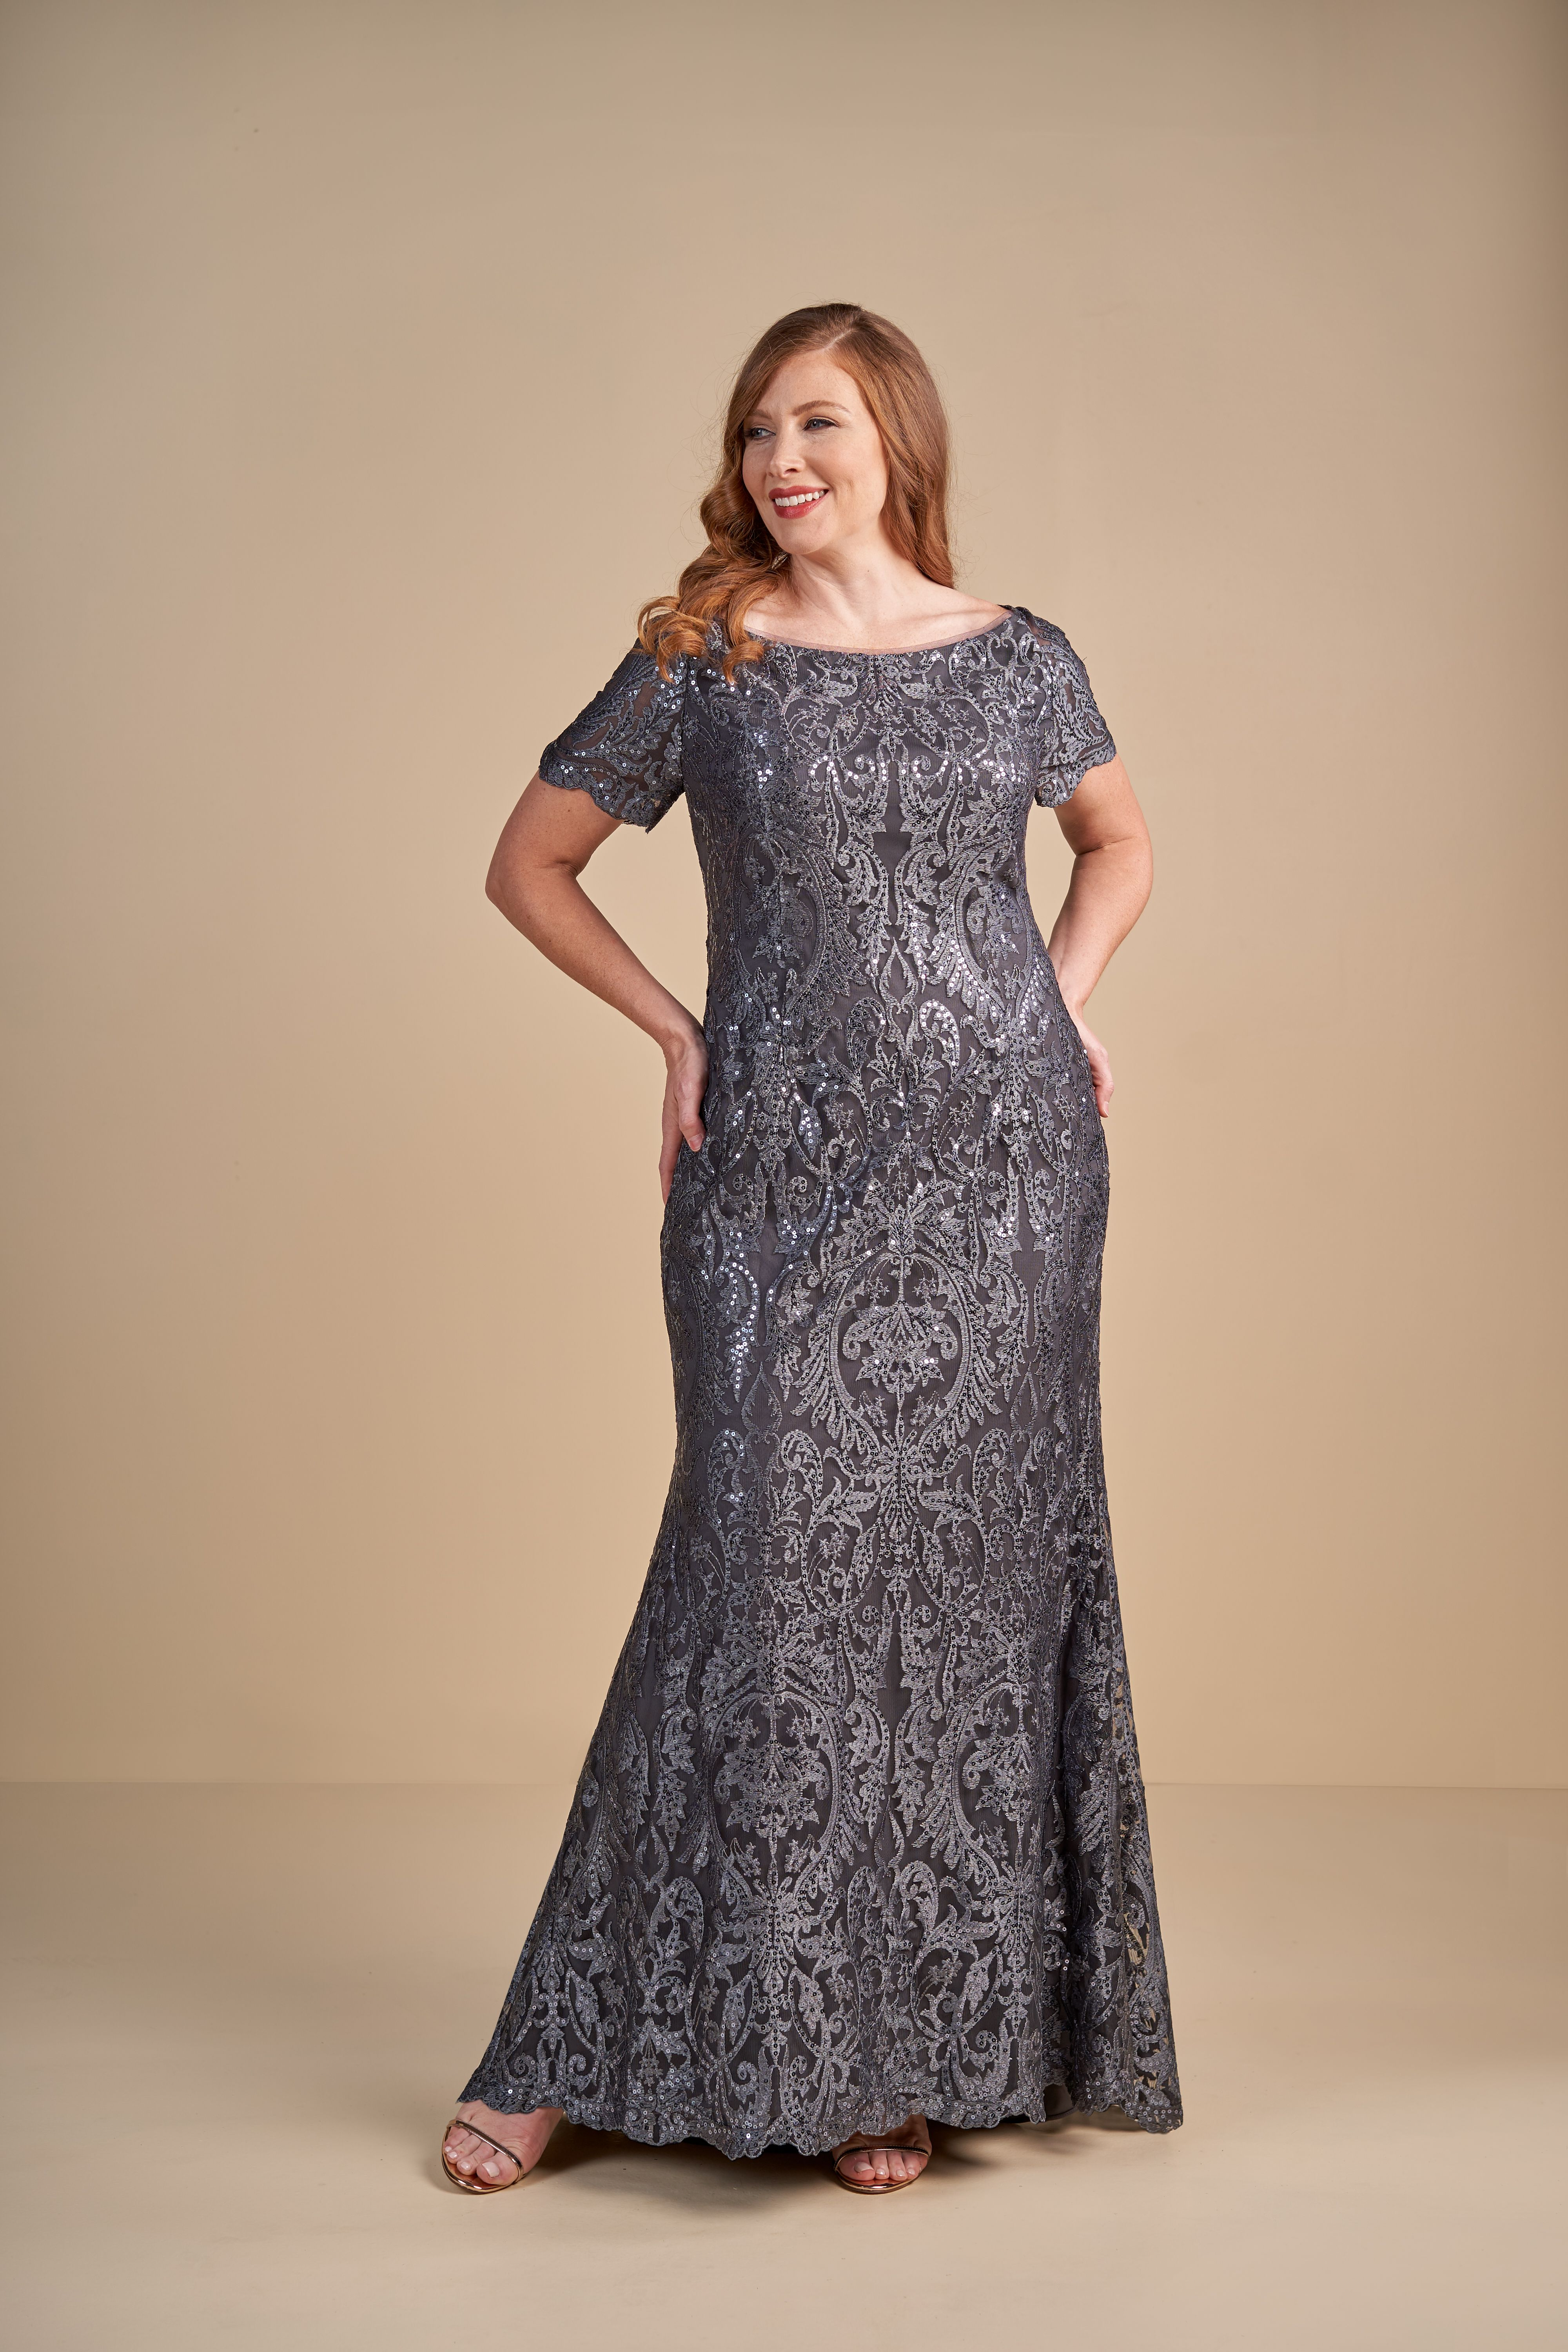 Plus Size Jade Couture Sophisticated Mother Of The Bride Dress